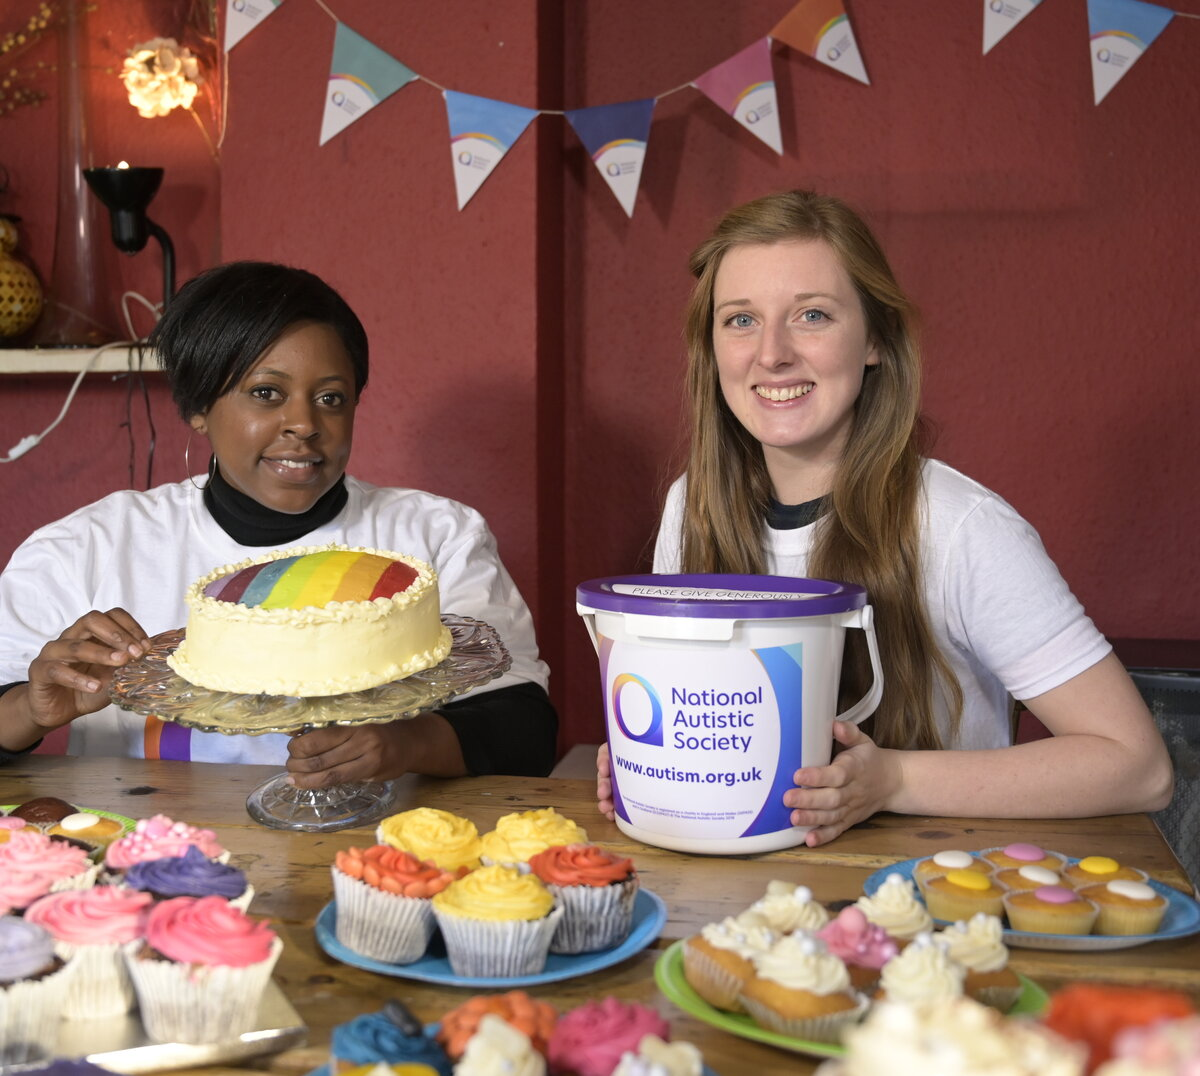 Model shoot to illustrate cake sales or bake sales to raise money.